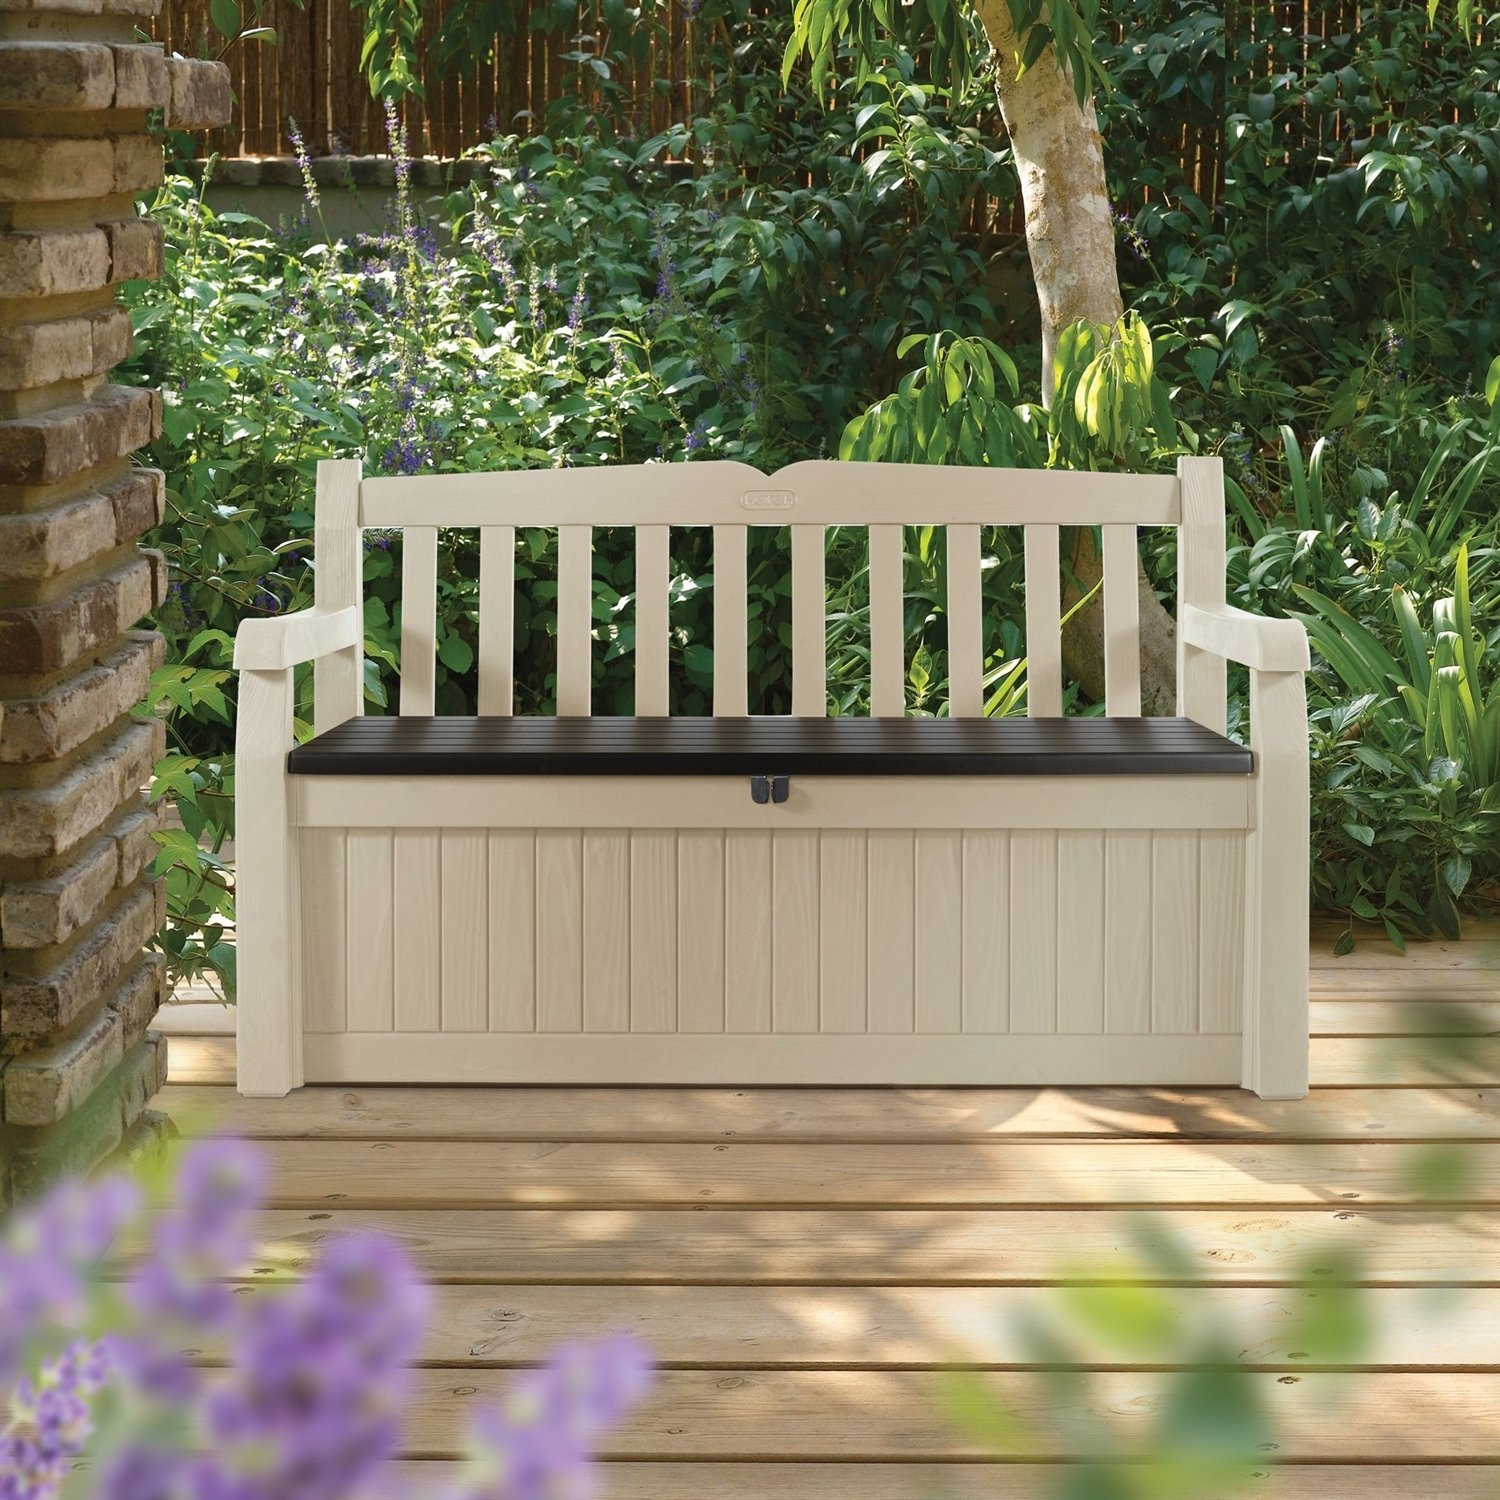 Beige Resin Eco Friendly 70 Gallon Outdoor Garden Bench Deck Box